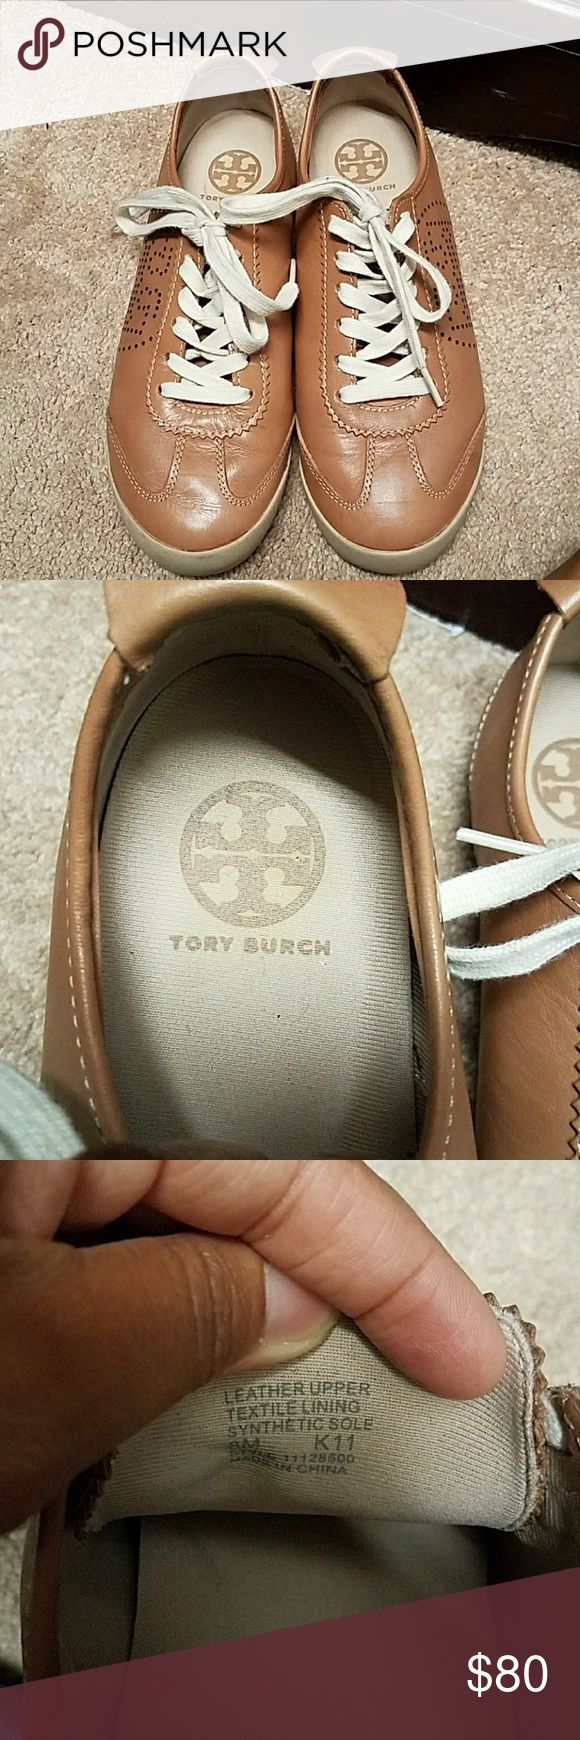 """Tory Burch Leather Sneakers Brown leather """"Murphy"""" sneaker with perforated Tory Burch emblem. Worn 3 times. Tory Burch Shoes Sneakers"""